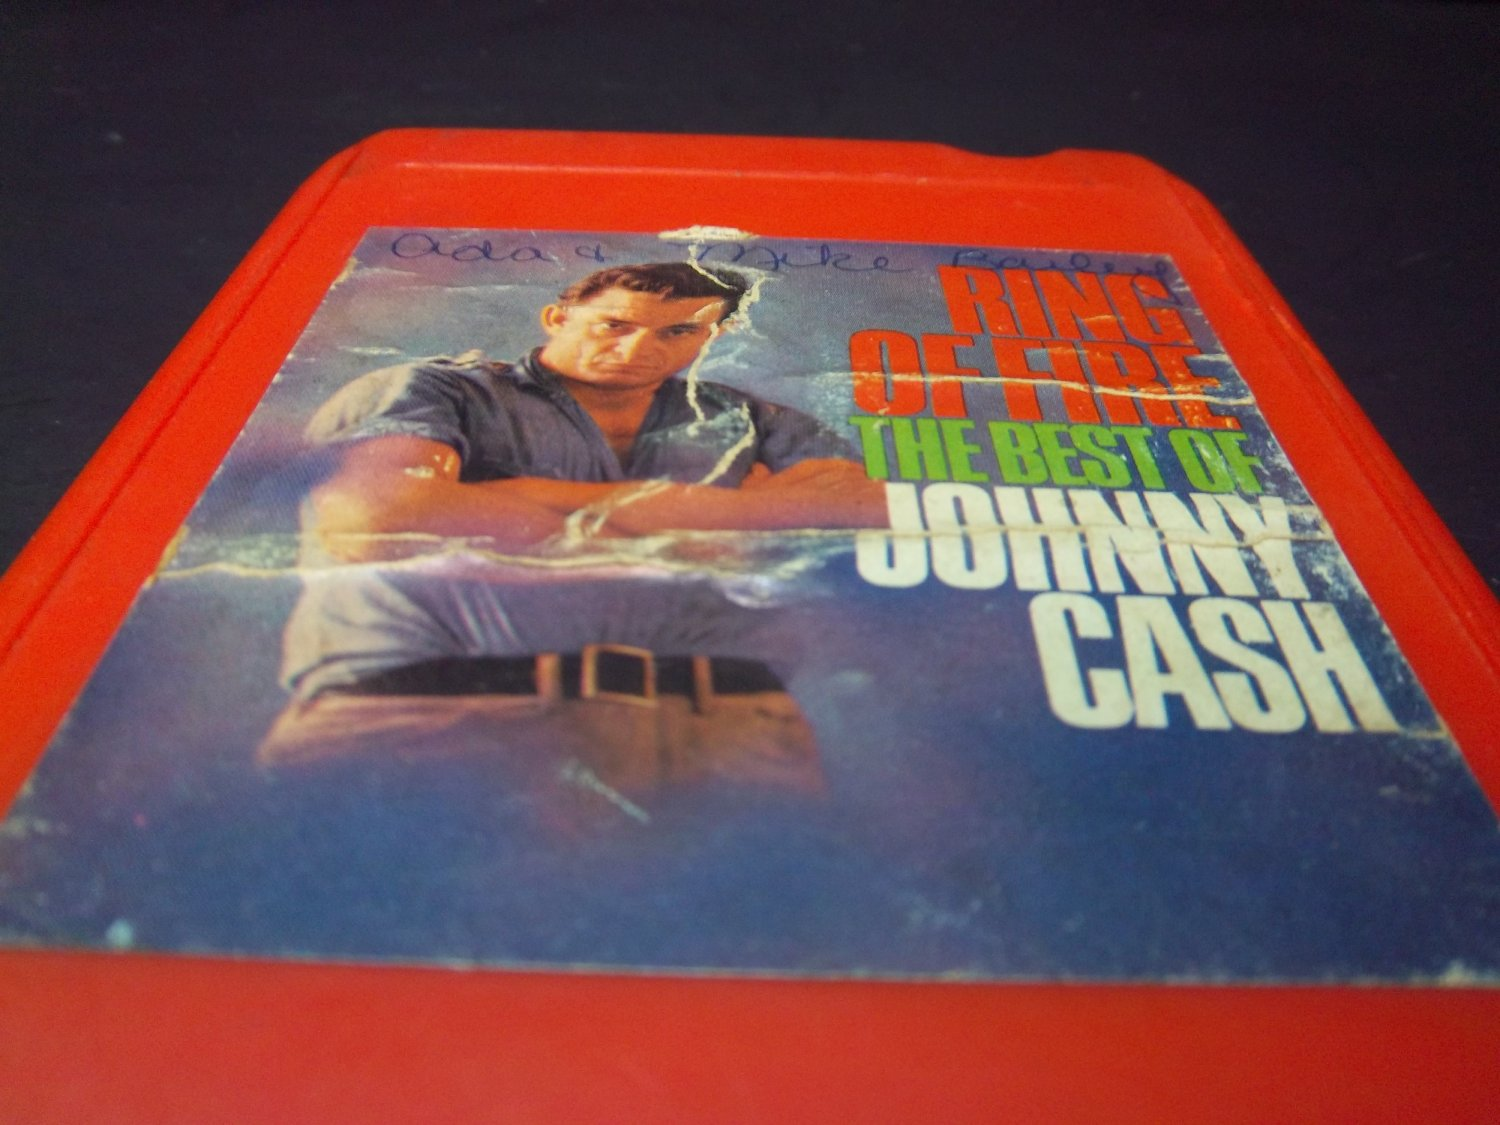 Johnny Cash Ring Of Fire - 18 10 0070 - 8 Track (E-1224)